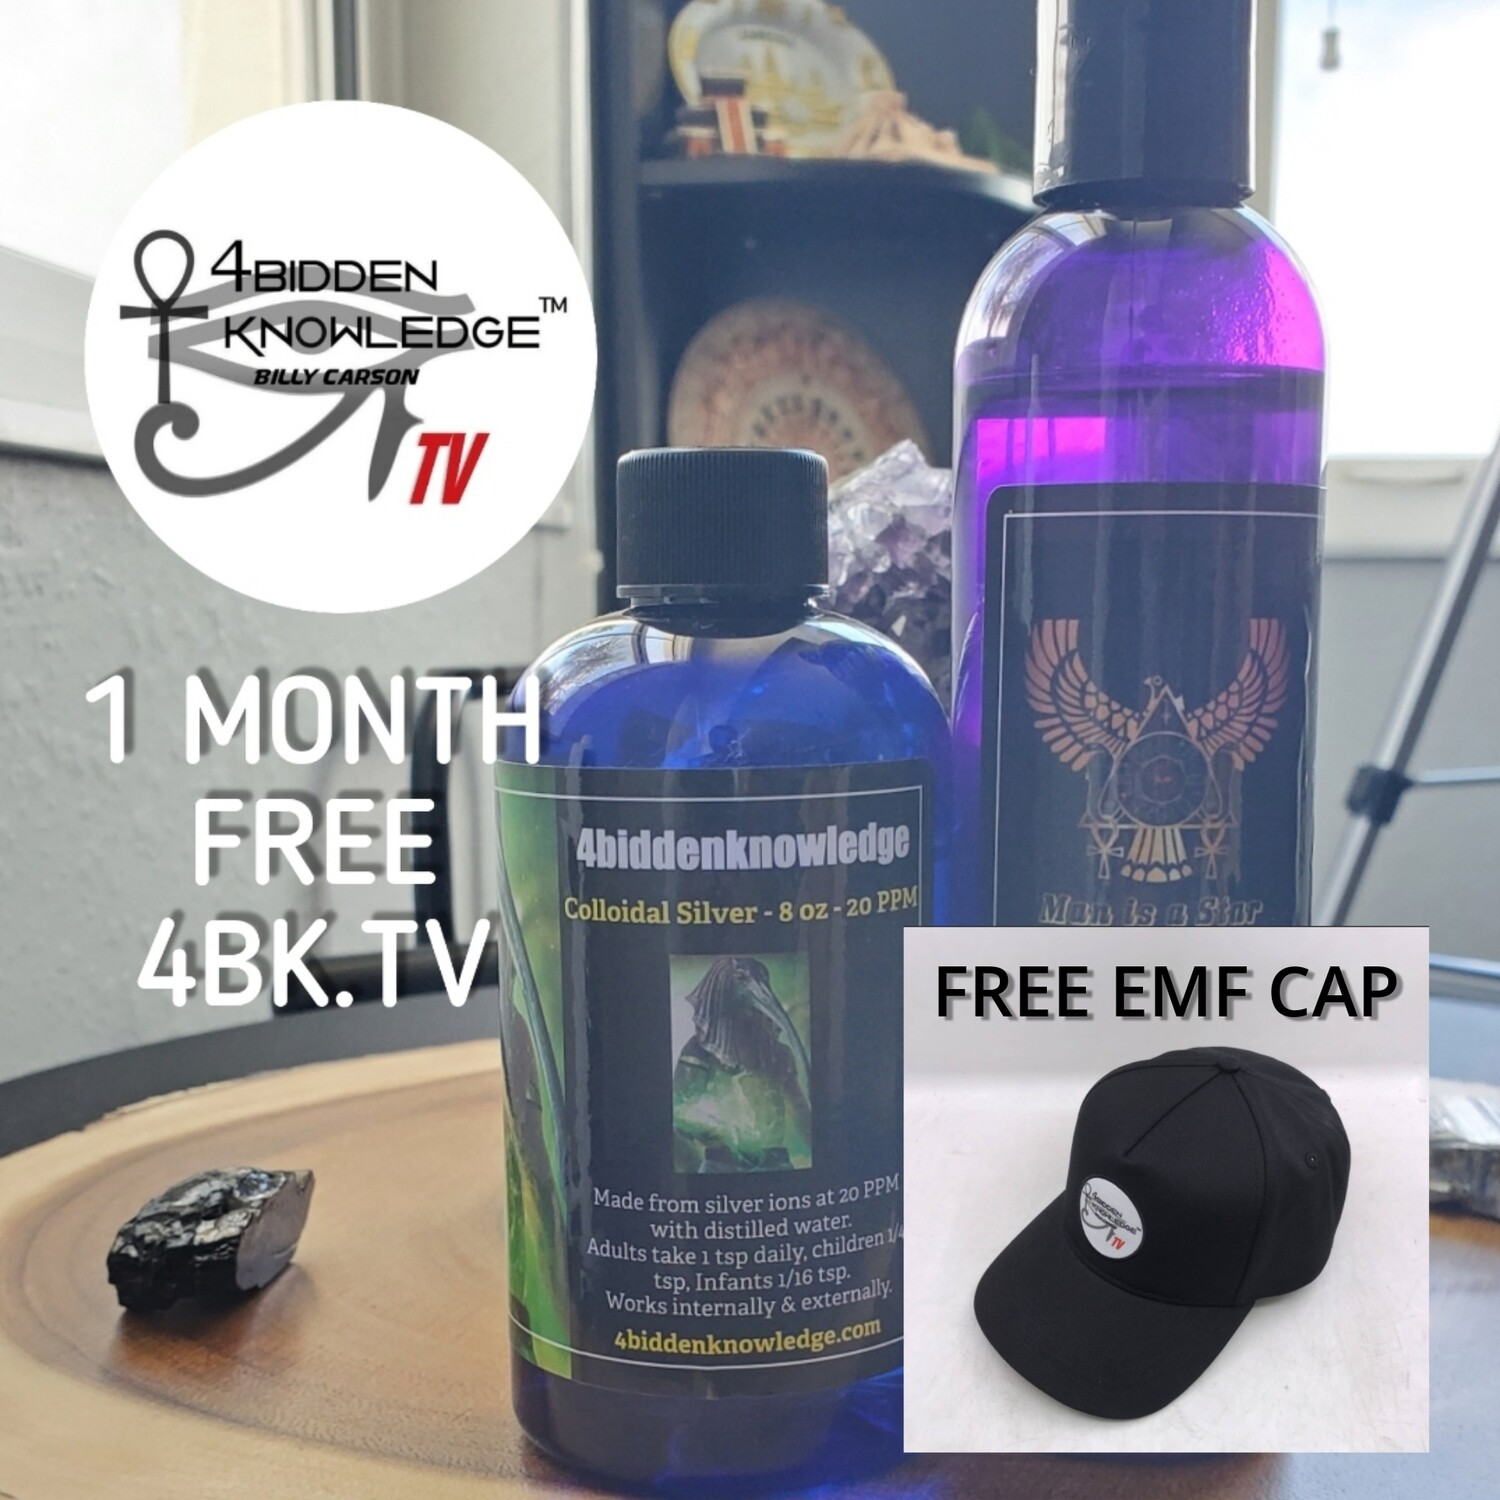 Alchemical Elixir of the Anunnaki - Starfire Gold - Liquid Ormes - 8 oz And COLLOIDAL SILVER 8 OUNCE - FREE EMF FITTED CAP - 1 FREE MONTH OF 4BIDDENKNOWLEDGE TV